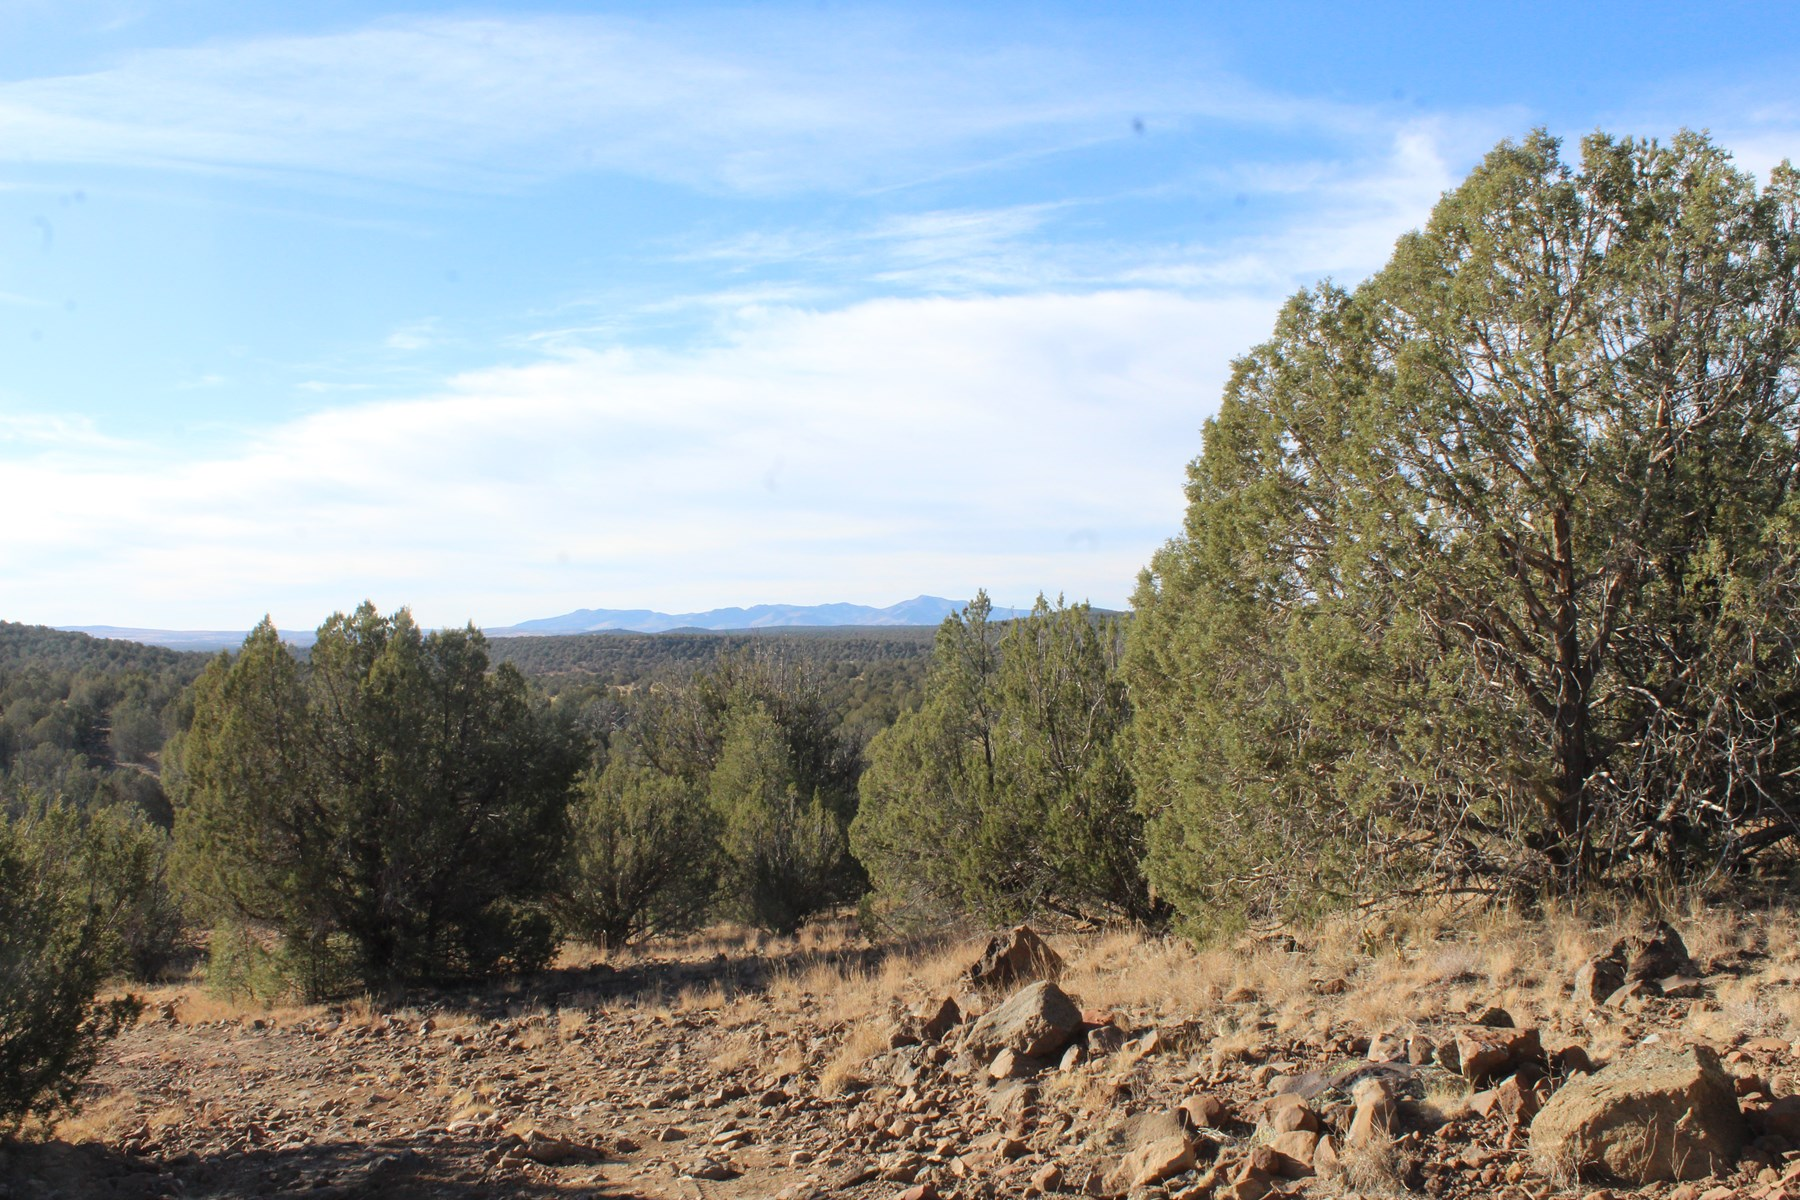 Arizona Mountain Land For Sale, Set up for Camping/Hunting